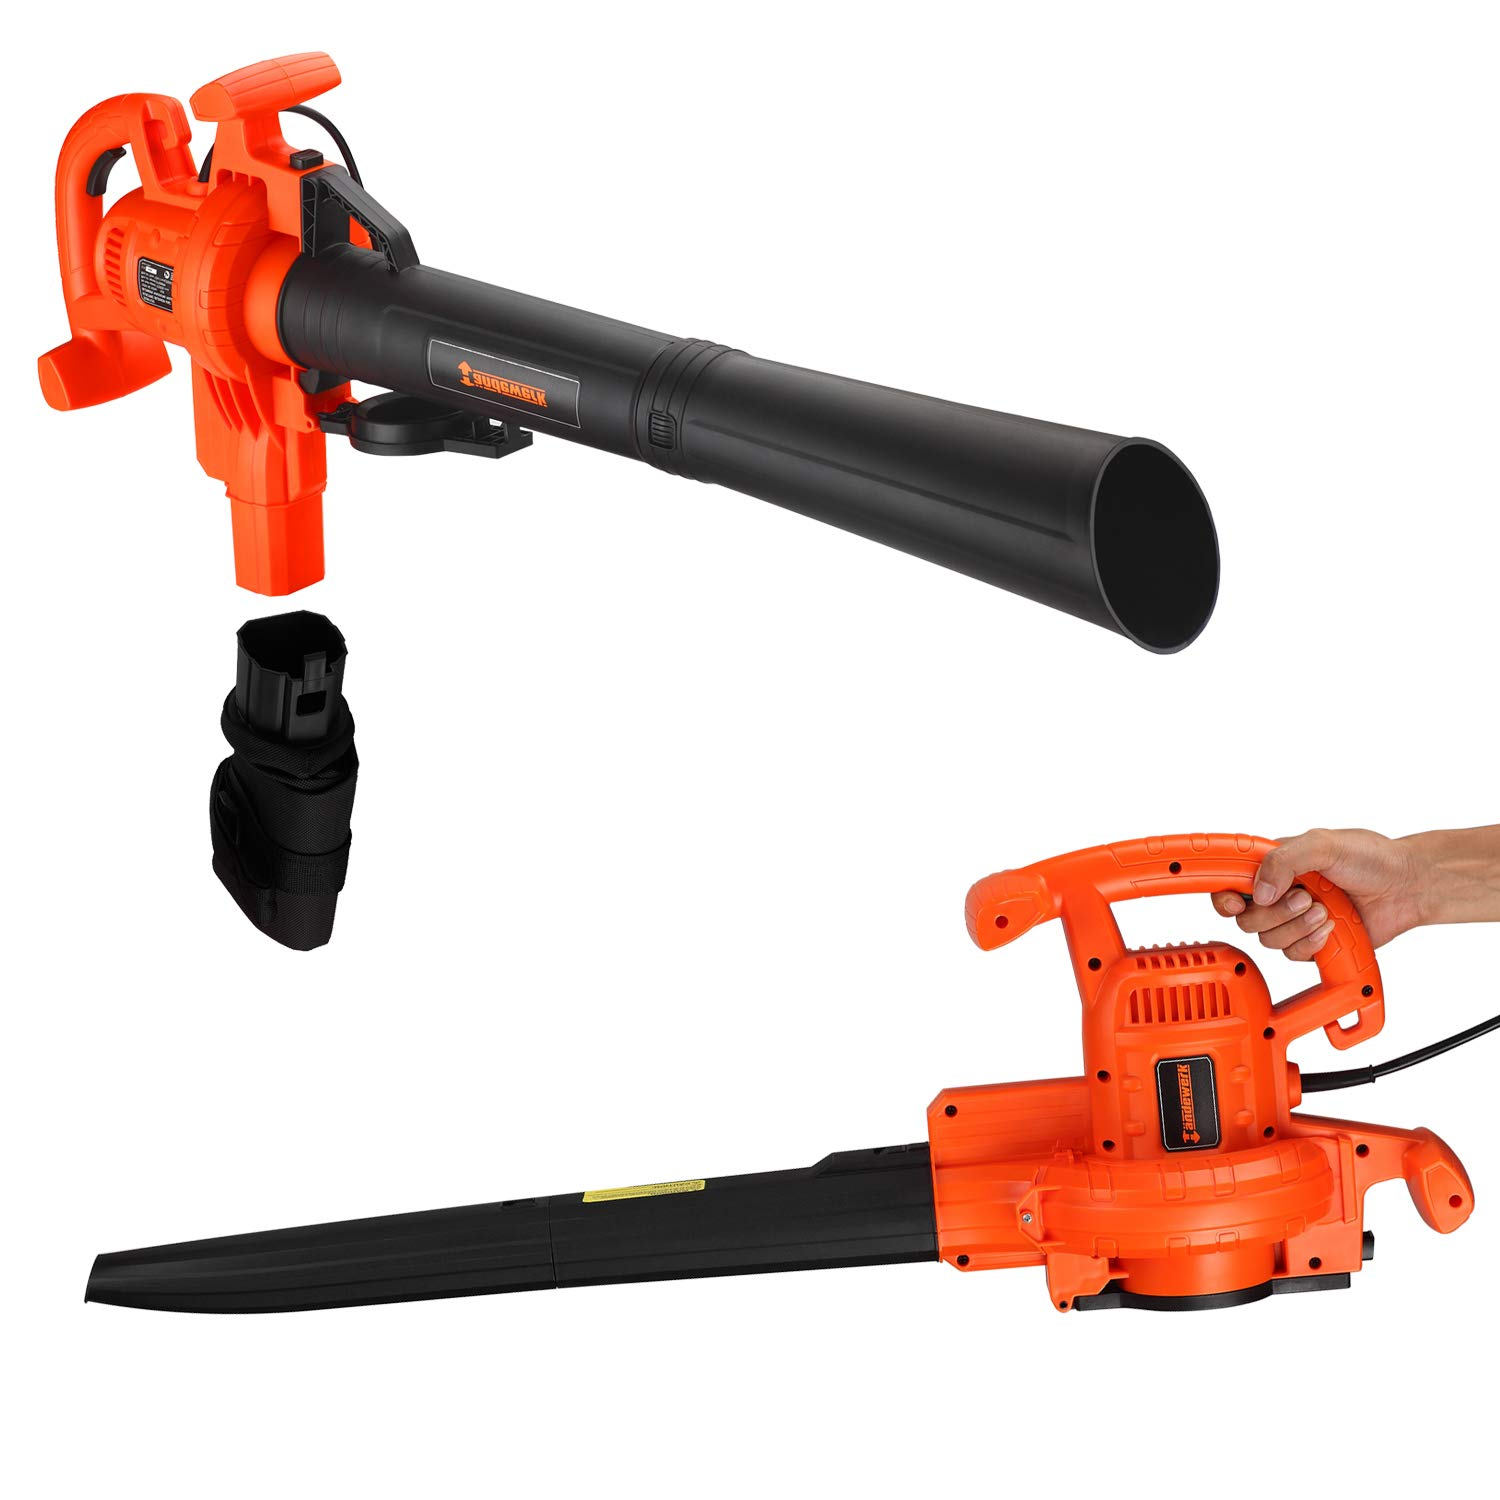 I-Choice 3 IN 1 Electric Corded Leaf Blower, Vacuum and Mulcher with 12 AMP Motor, High Performance Variable Speed Yard Cleaner with Mulch Bag, 210 MPH